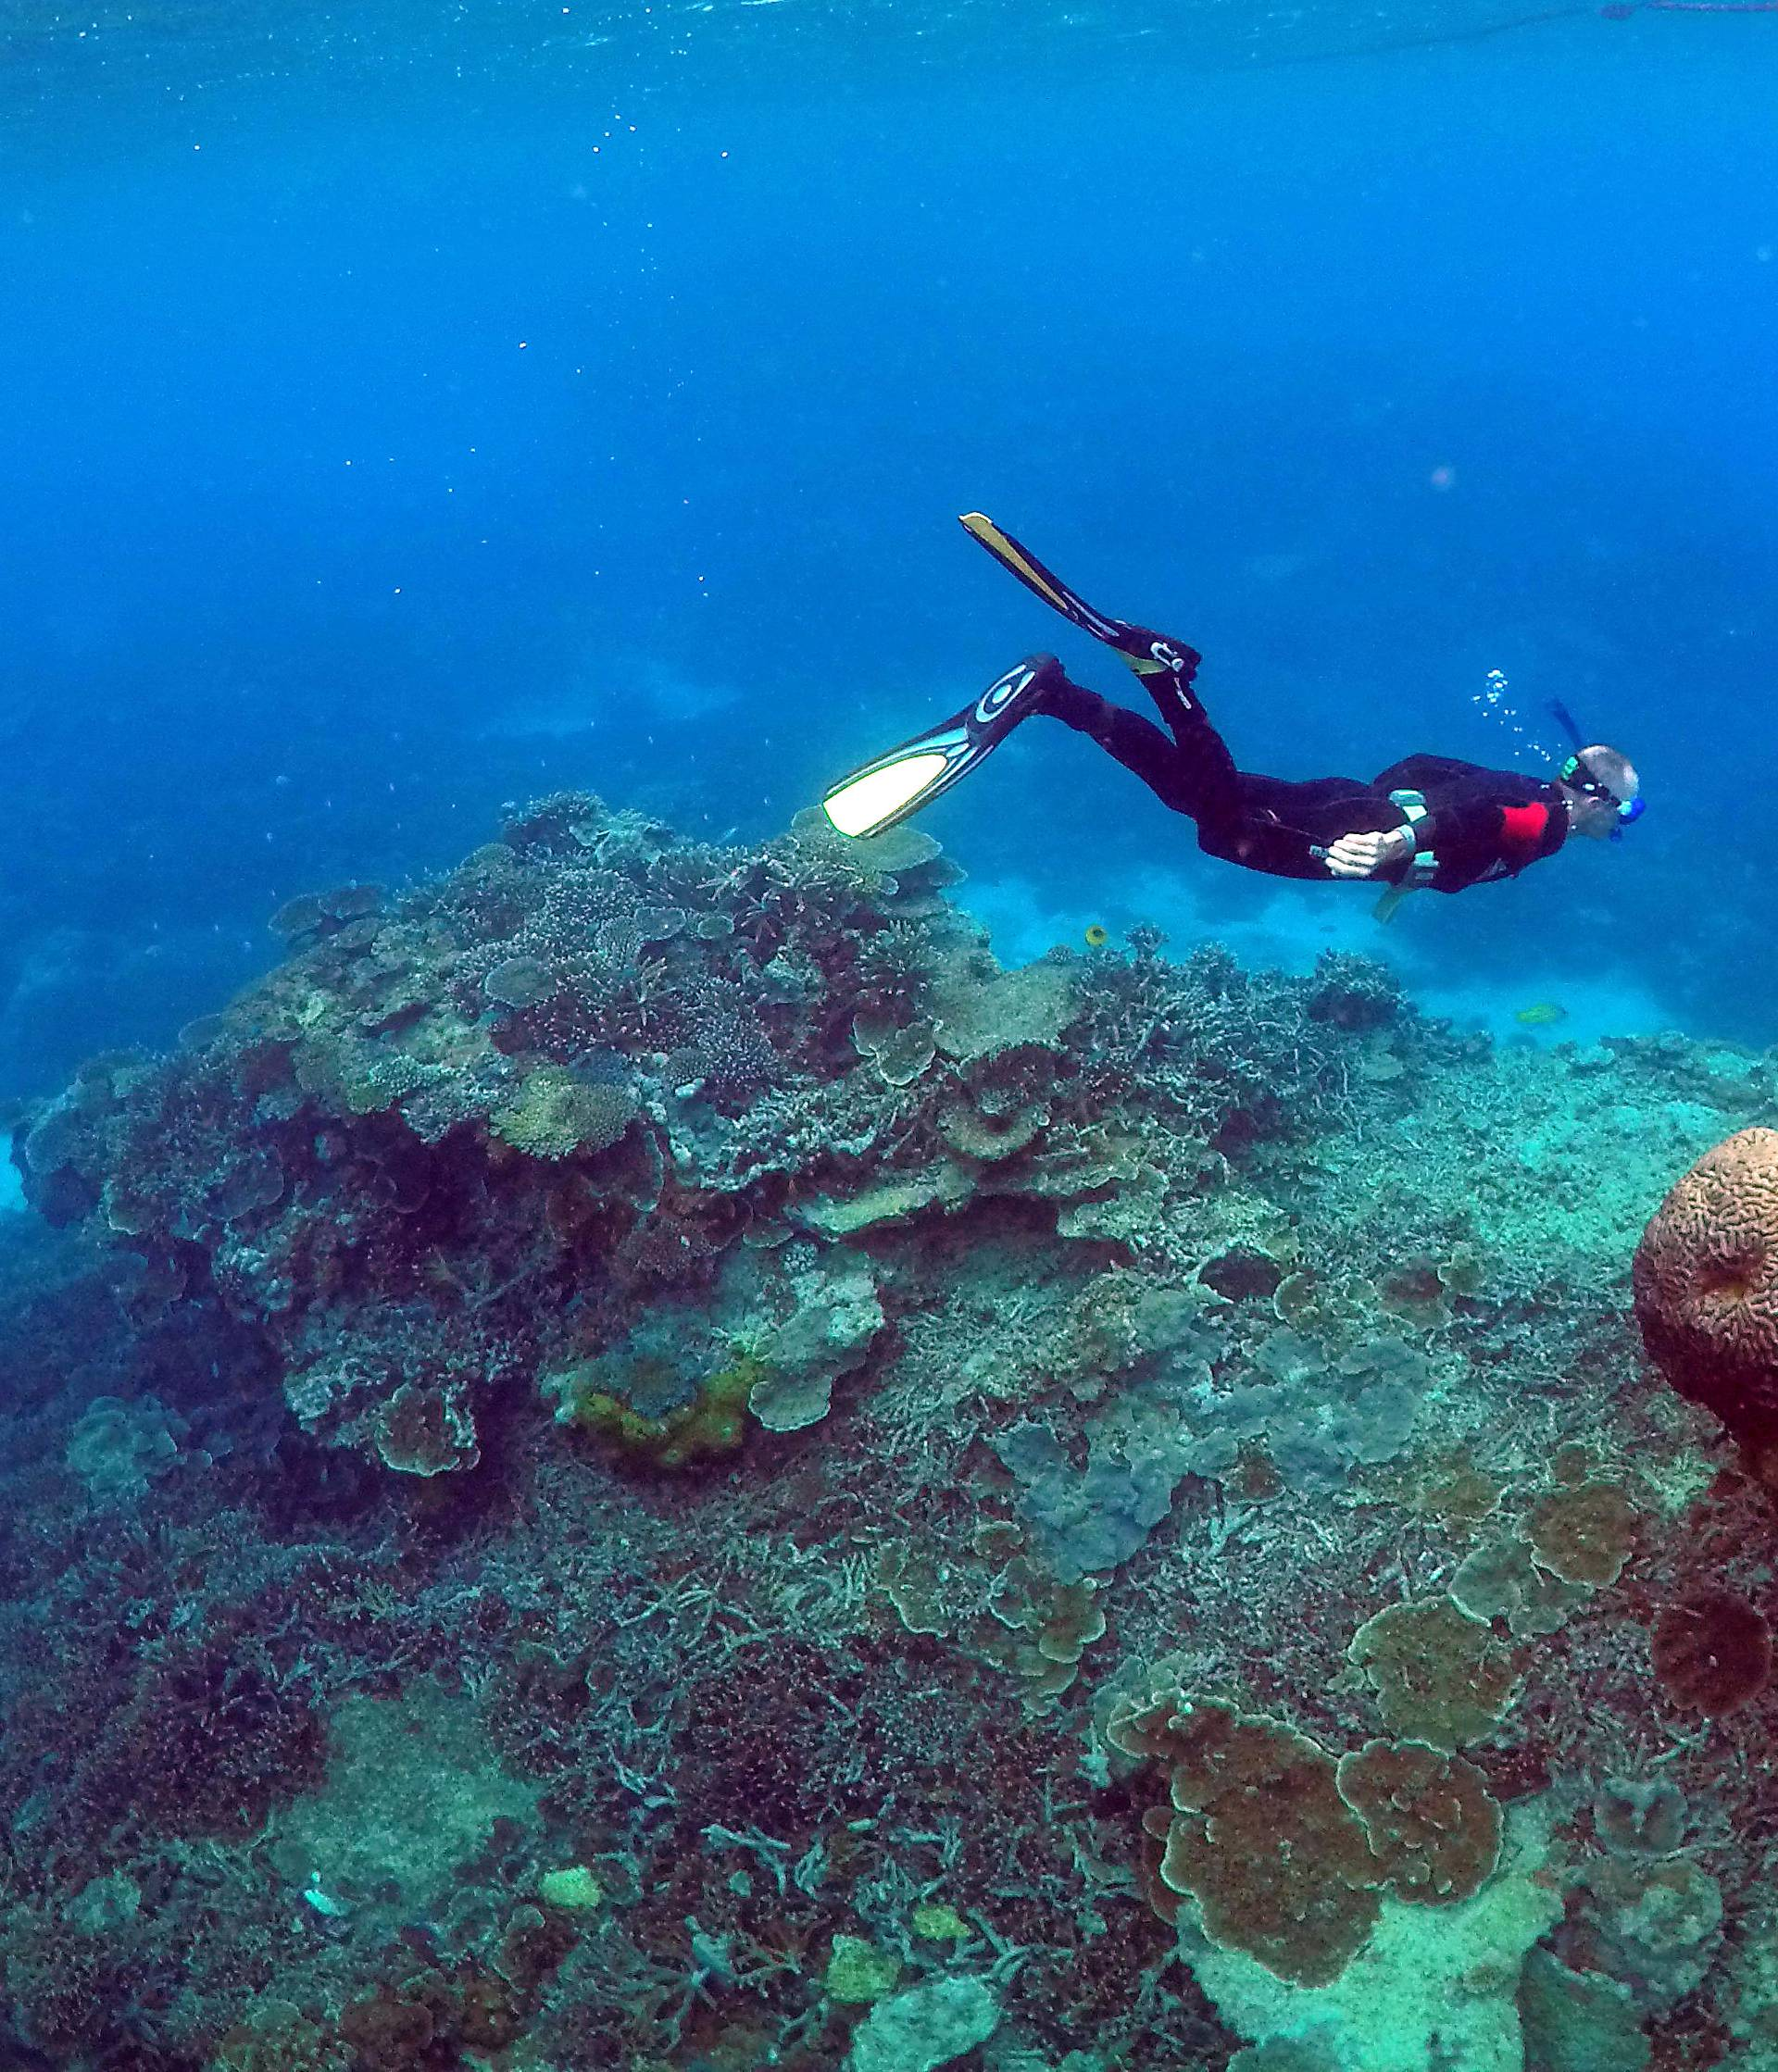 A man snorkels in an area called the 'Coral Gardens' near Lady Elliot Island, on the Great Barrier Reef